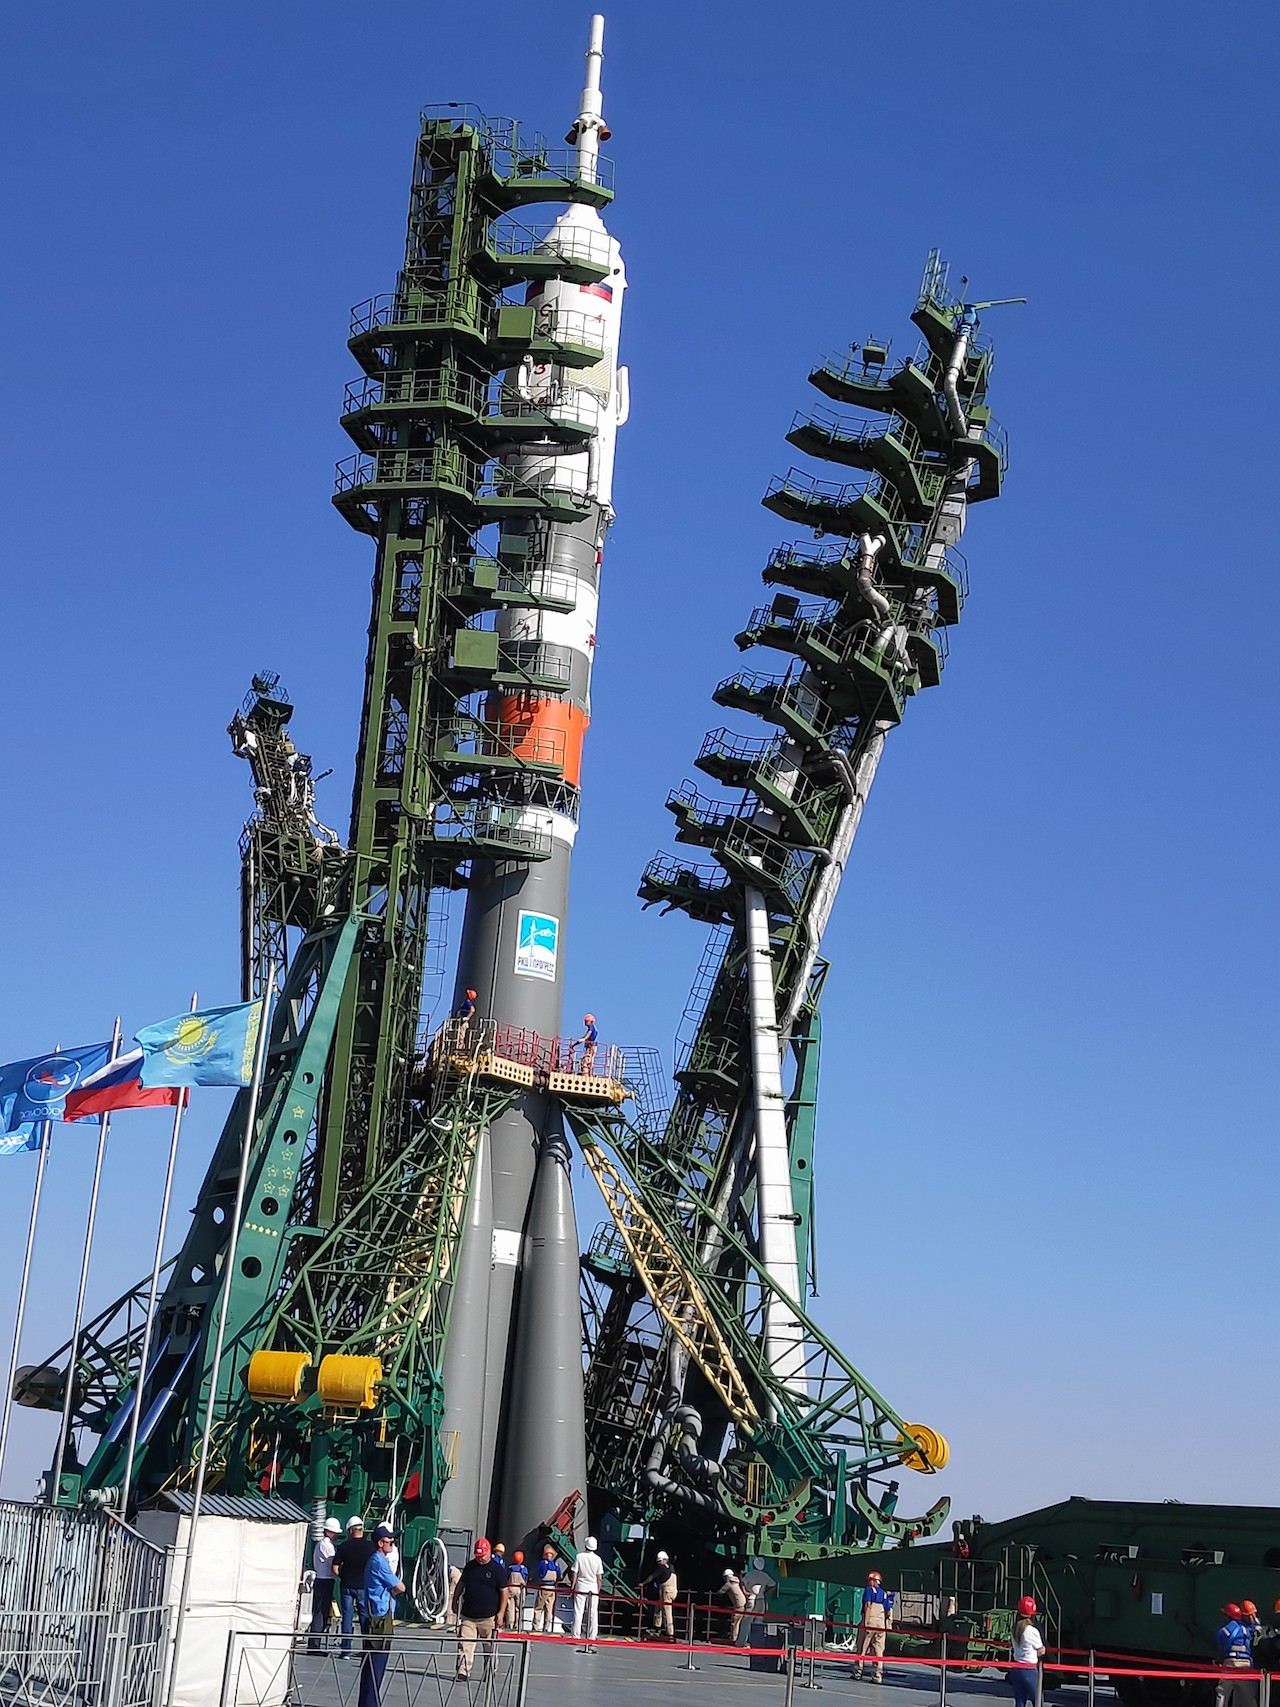 Mini-EUSO launched to the International Space Station 🚀